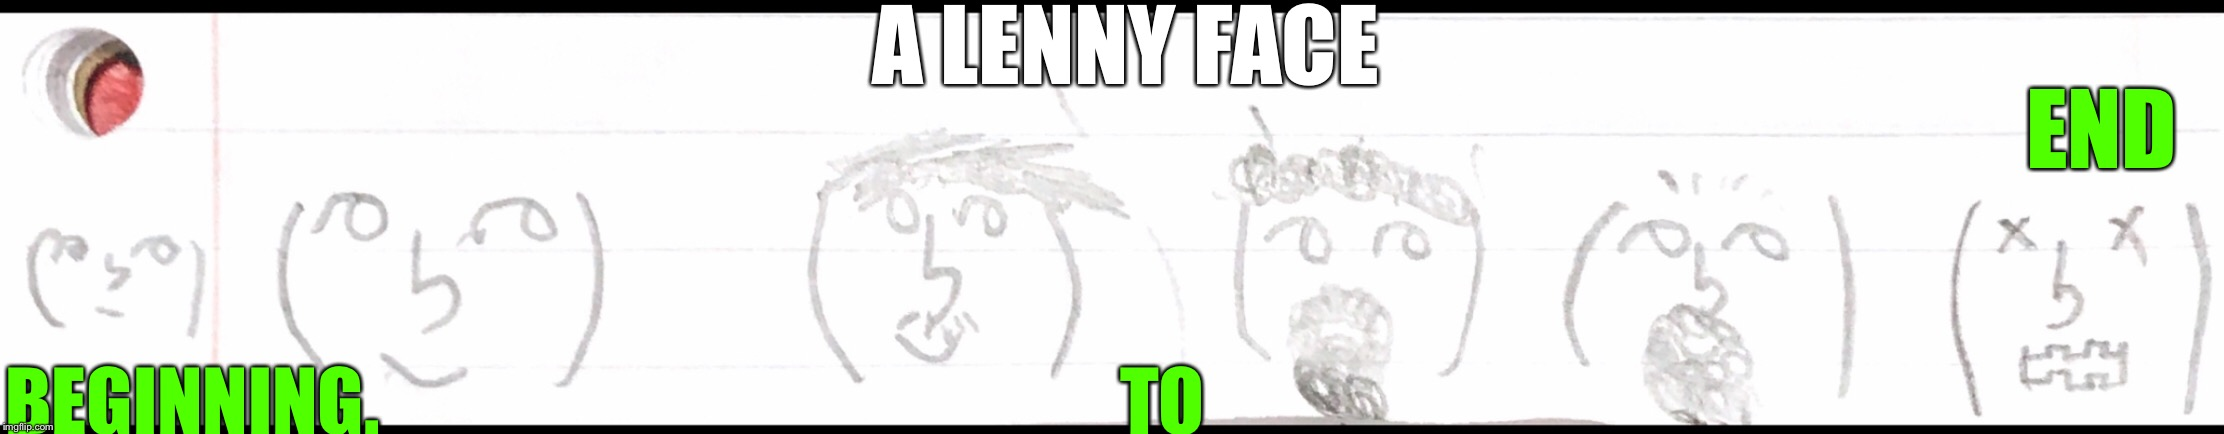 Life Of a lenny face ( ͡° ͜ʖ ͡°) | A LENNY FACE BEGINNING.                                                  TO END | image tagged in lenny face,life | made w/ Imgflip meme maker